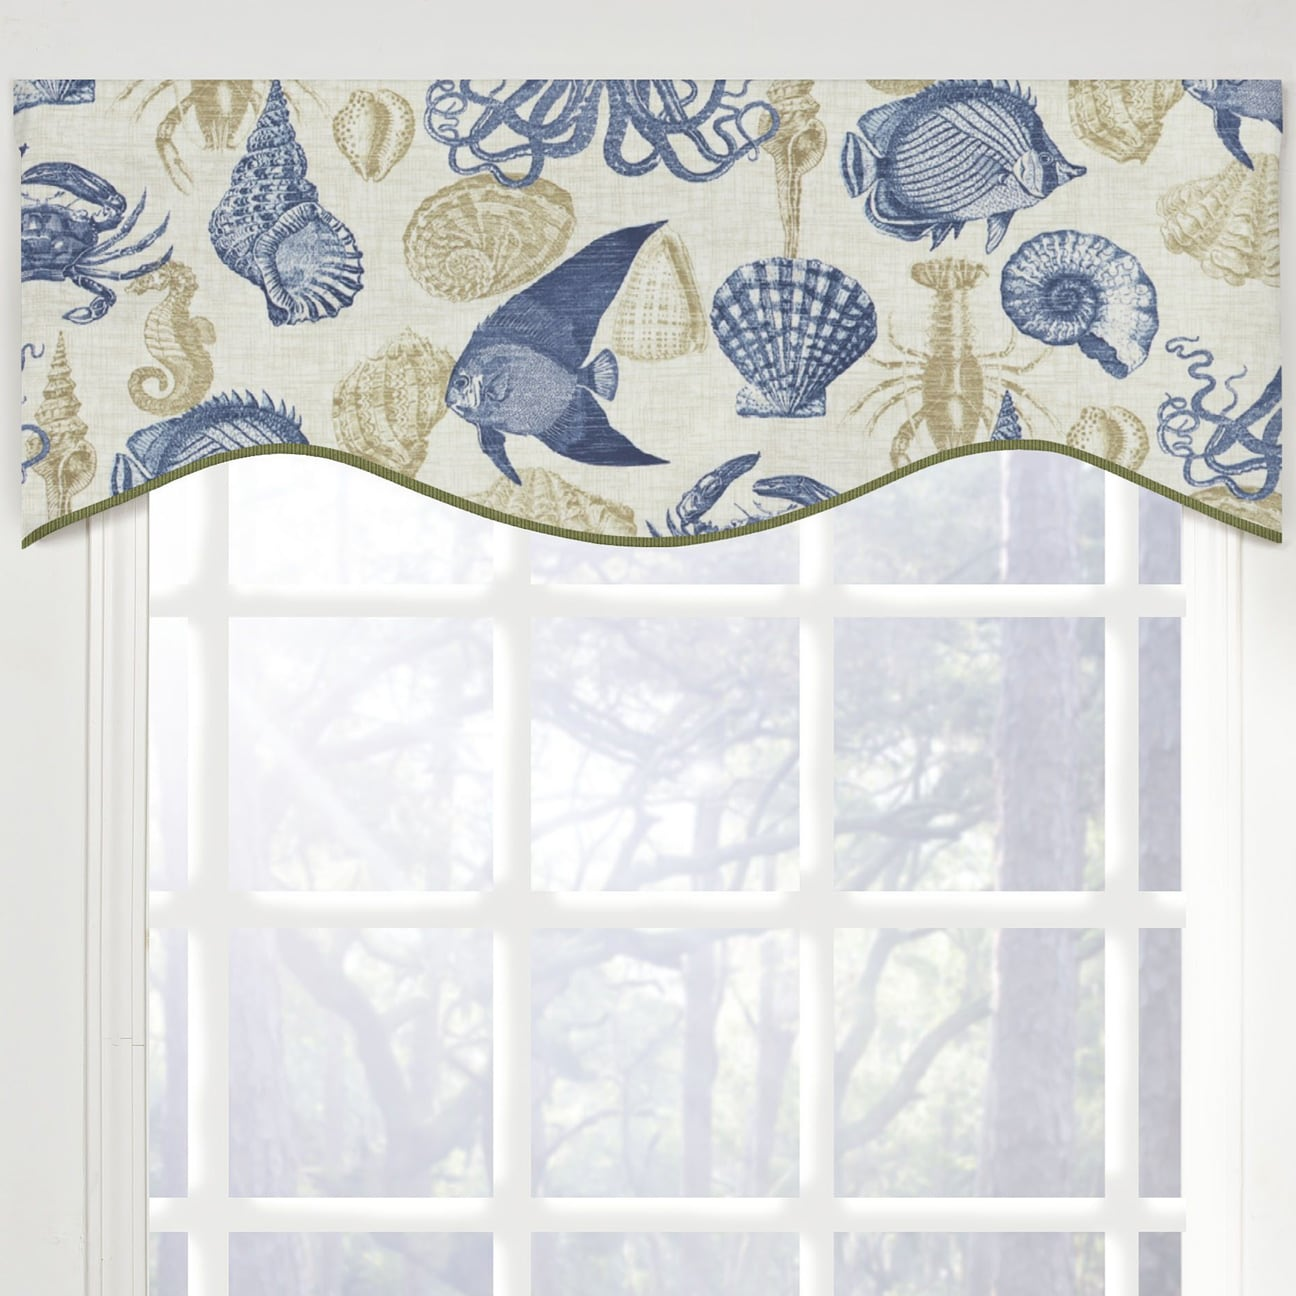 Reef Life M-shaped Window Valance